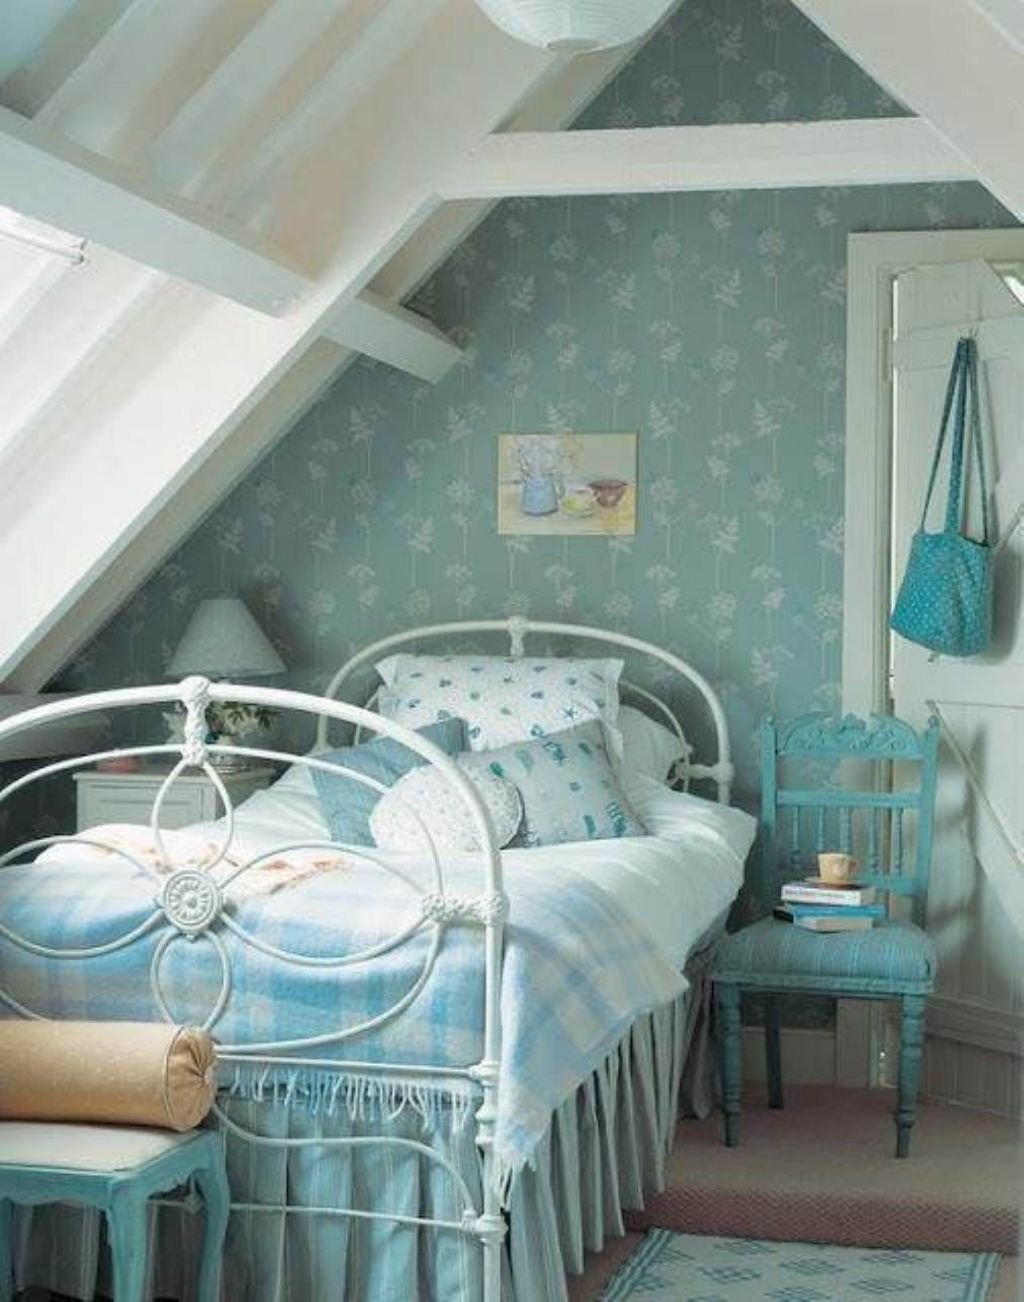 Attic Space Ideas Lovely Attic Bedroom For Teenage Girl 6 Attic Room Ideas